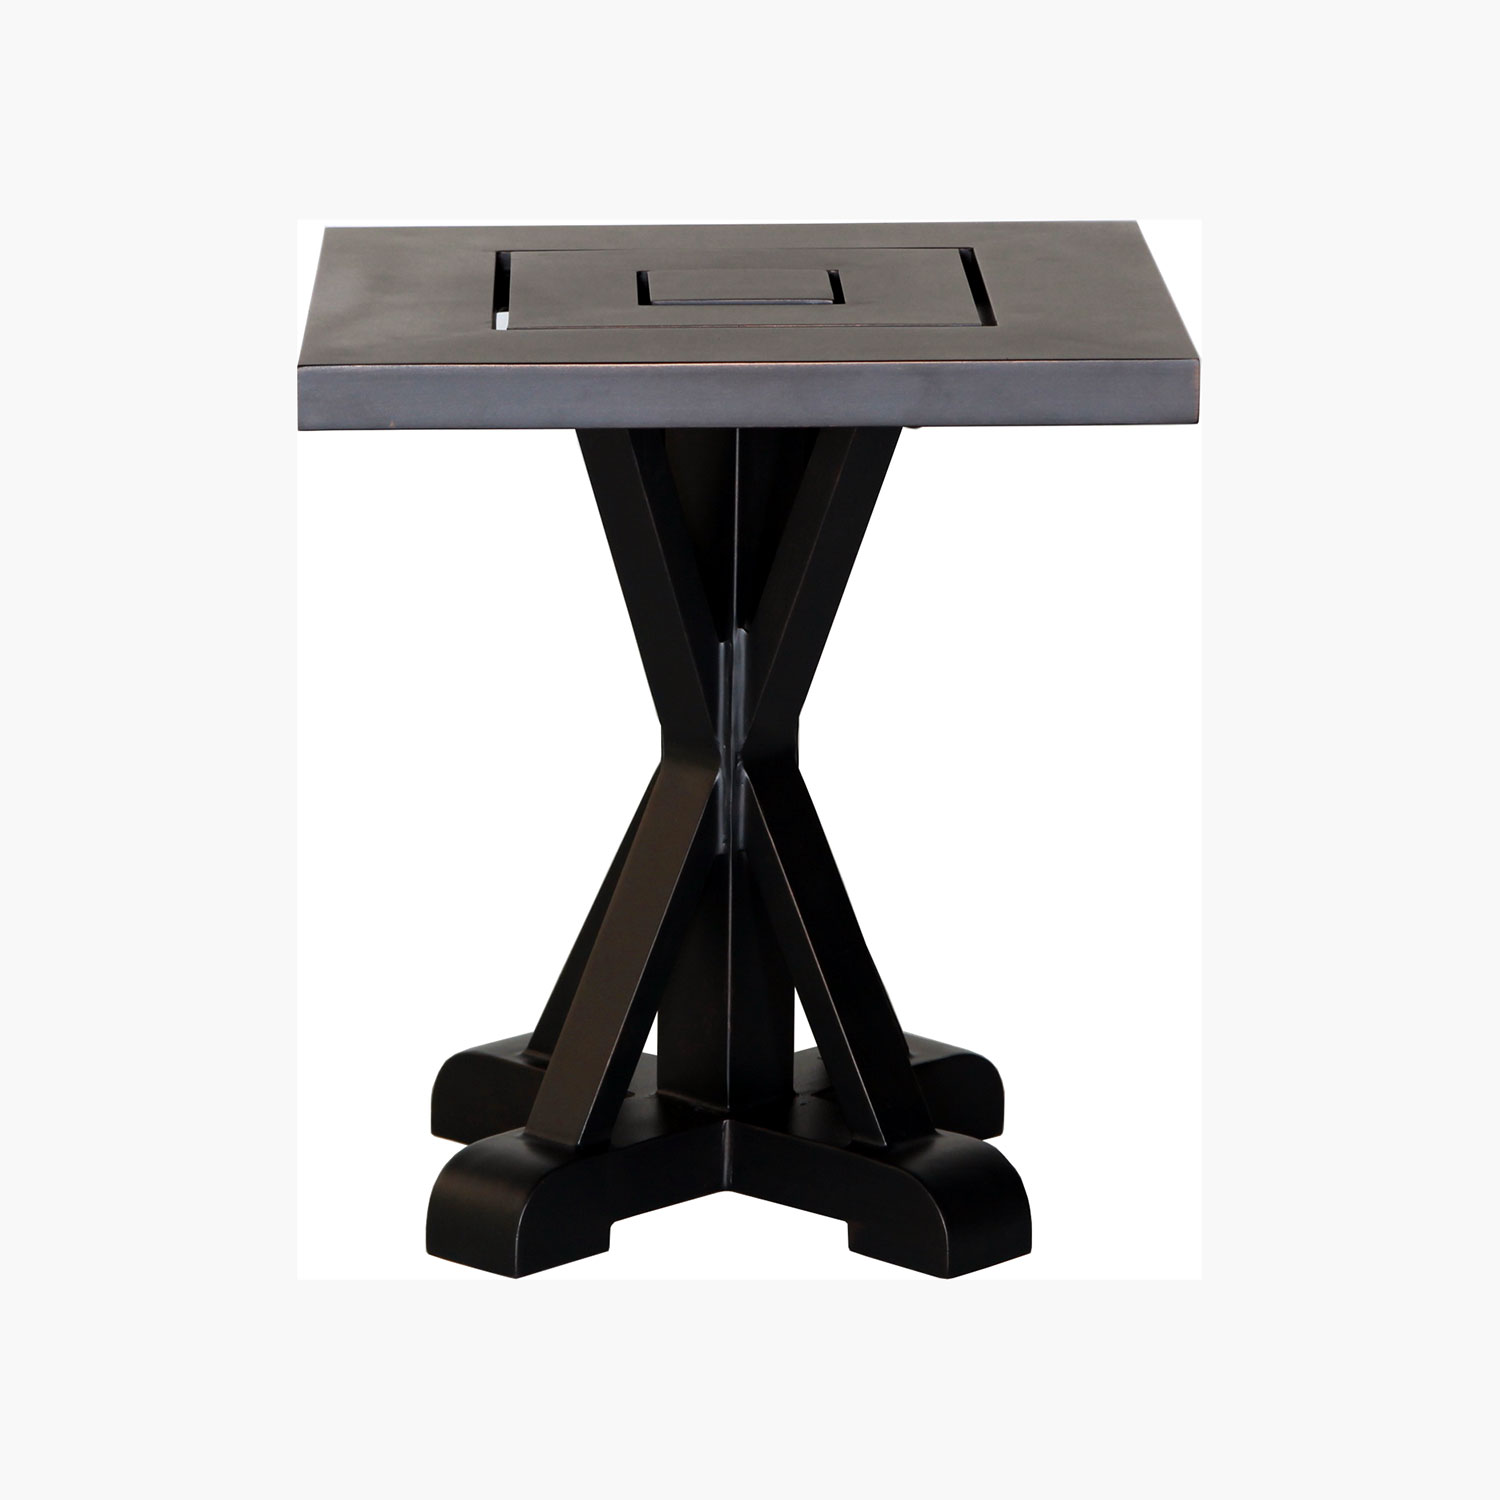 series square accent table jmsqat outdoor furniture end small wood dining chairs tier modern cabinet expandable tiffany like lamps protector round living room tyndall next coffee